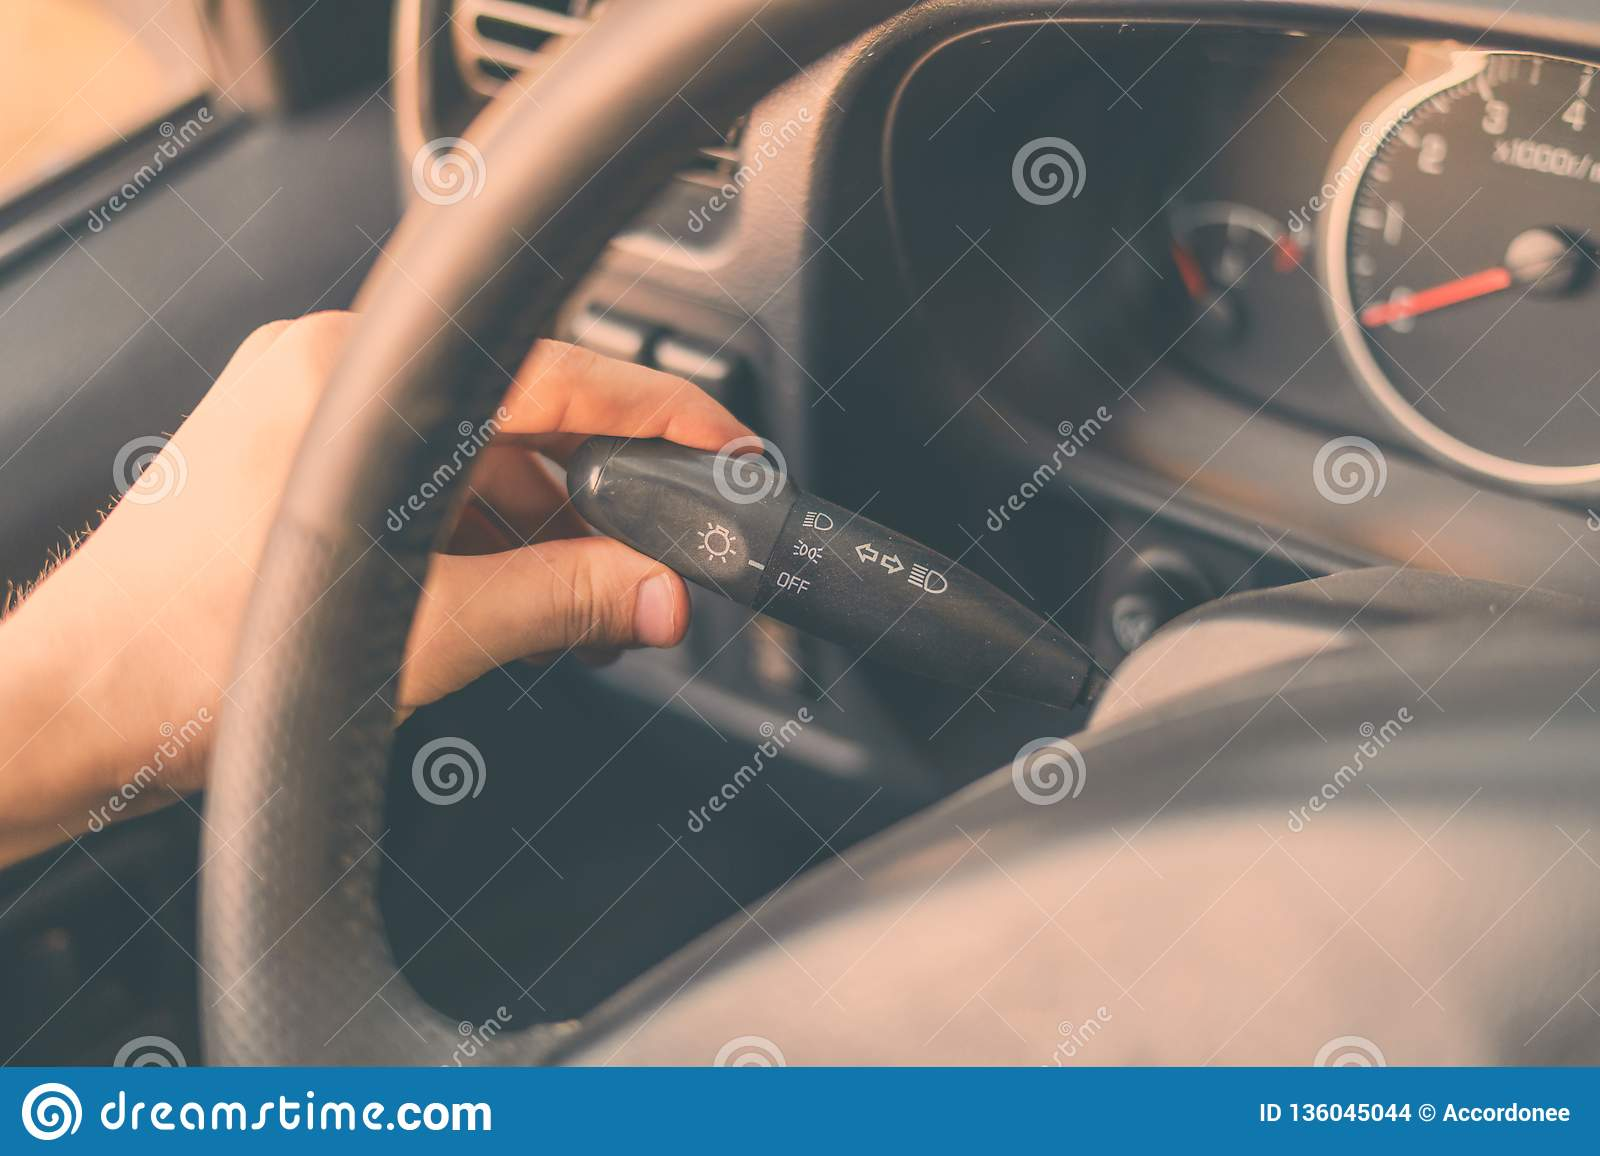 Process of adjusting car for comfort drive and turn on turning light b